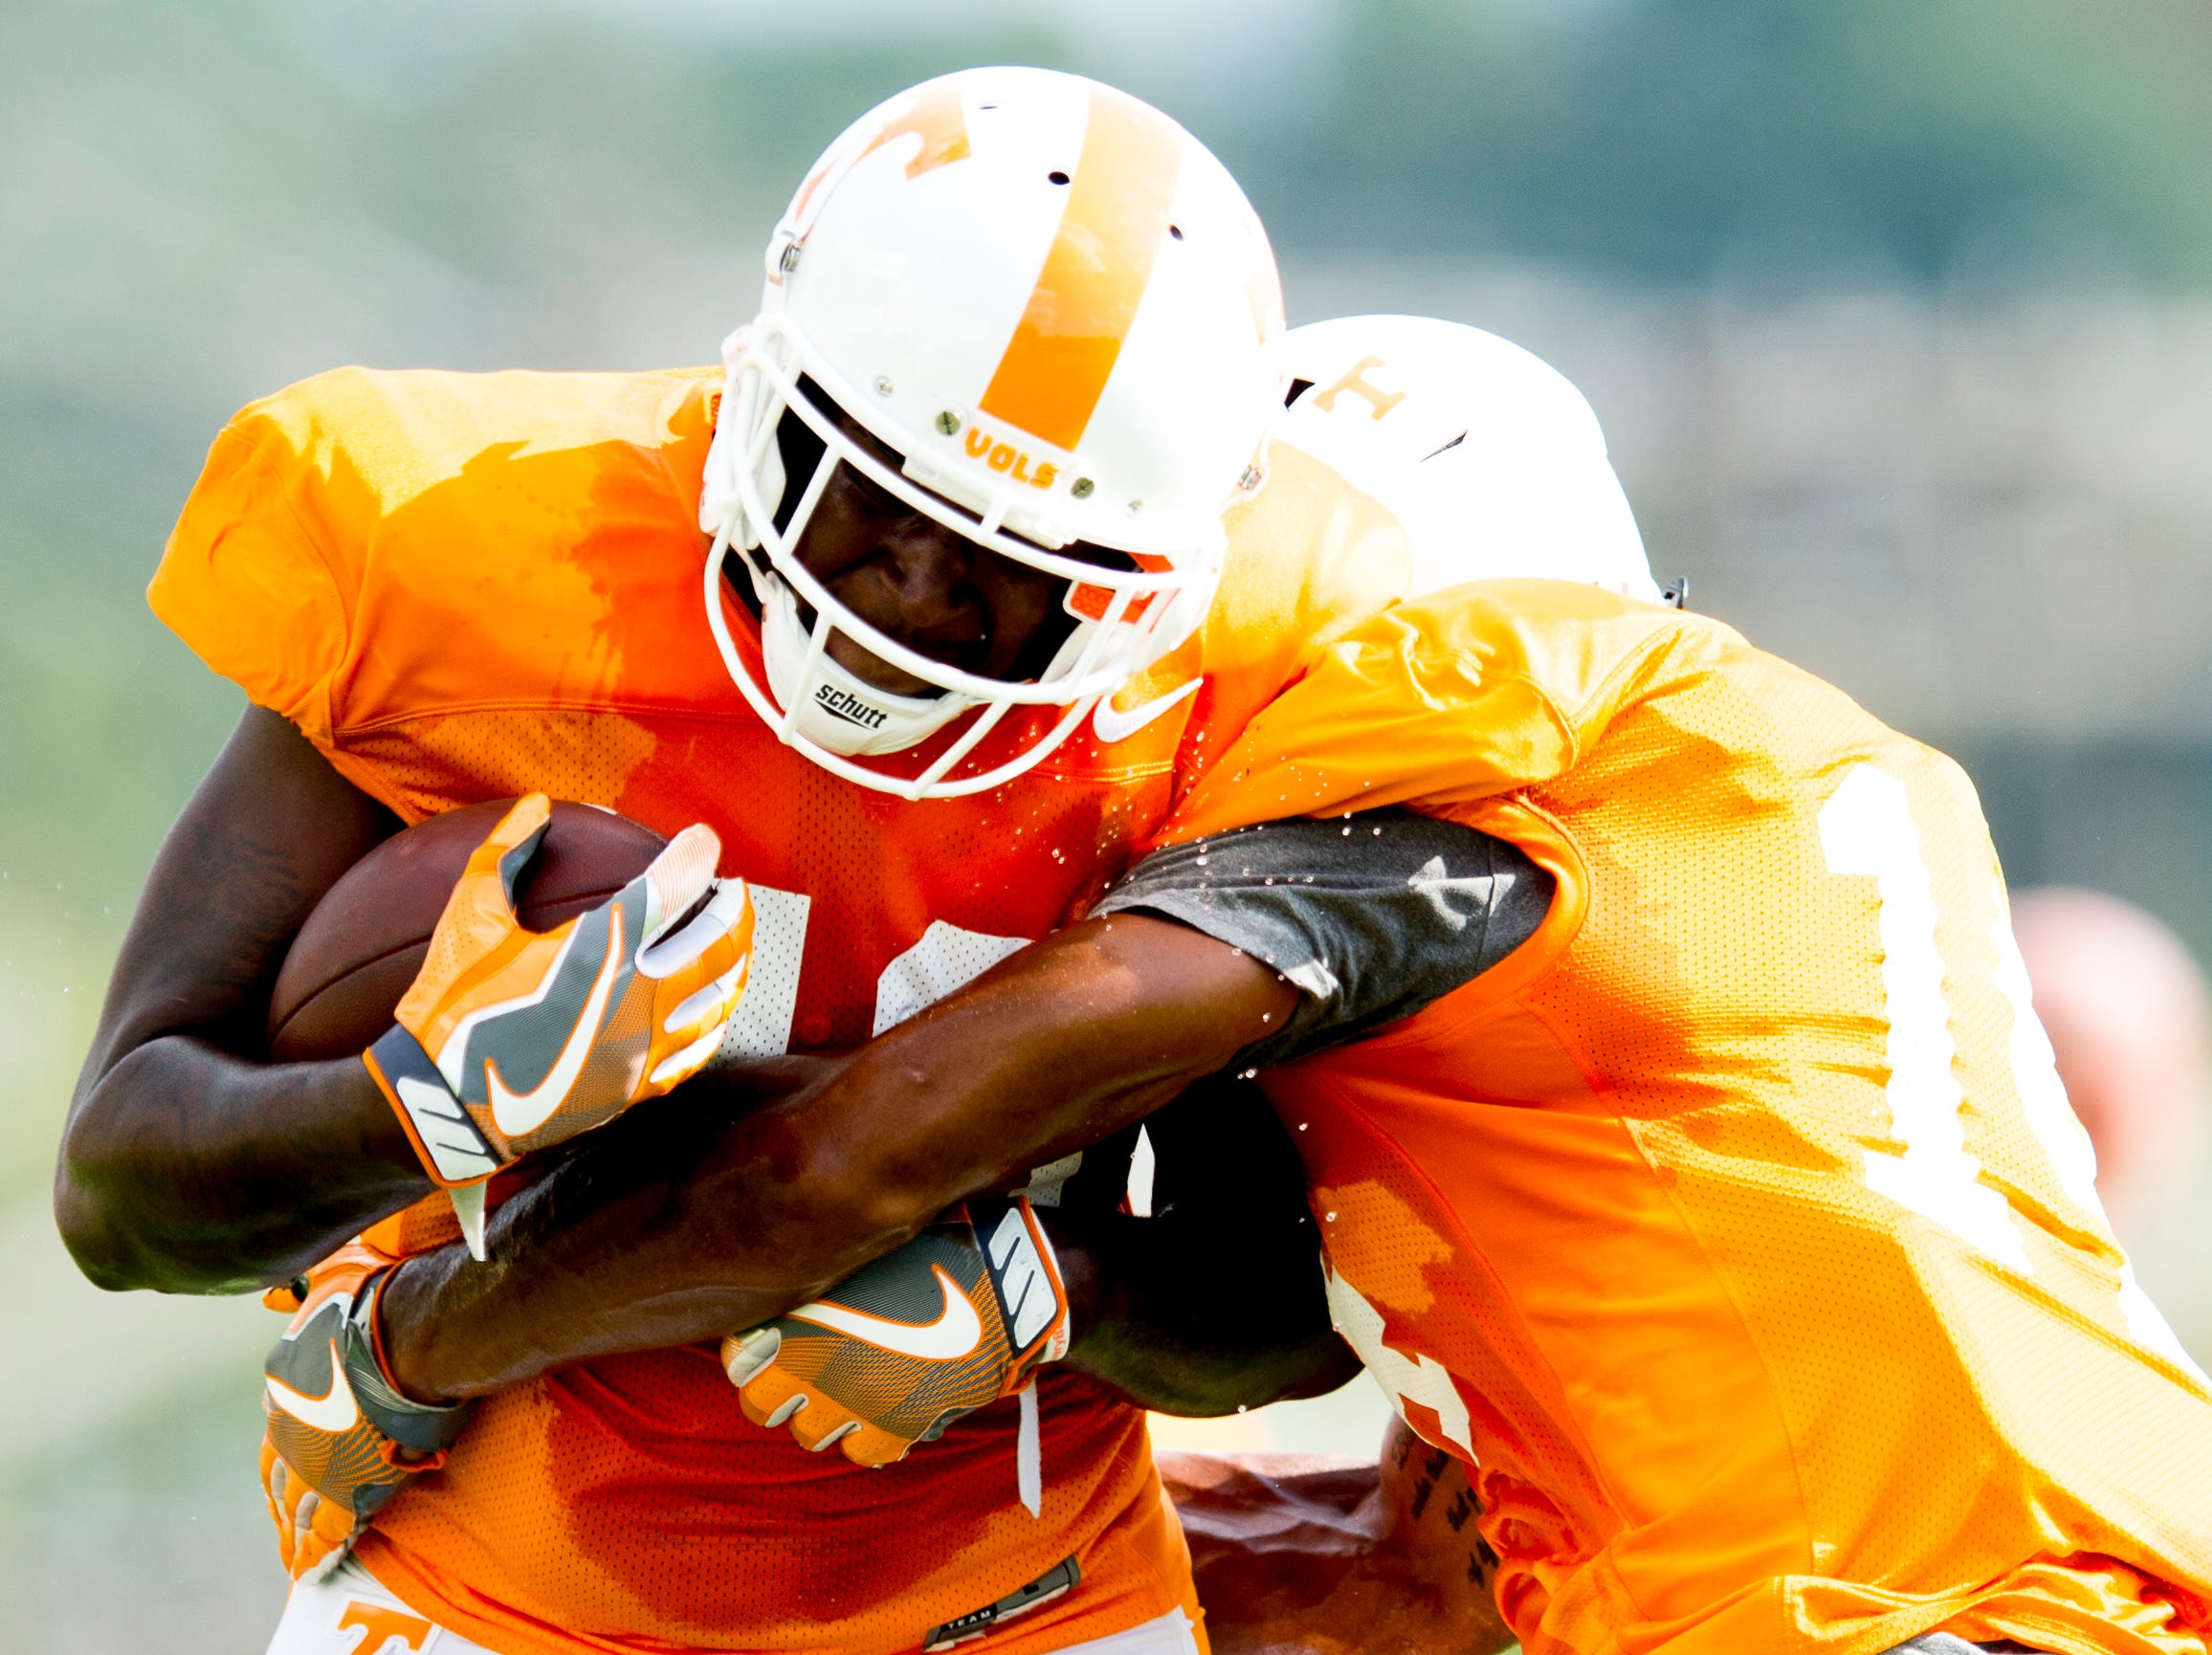 Tennessee linebacker JJ Peterson (40) and Tennessee linebacker Quart'e Sapp (14) drill during Tennessee fall football practice at Haslam Field in Knoxville, Tennessee on Wednesday, September 12, 2018.